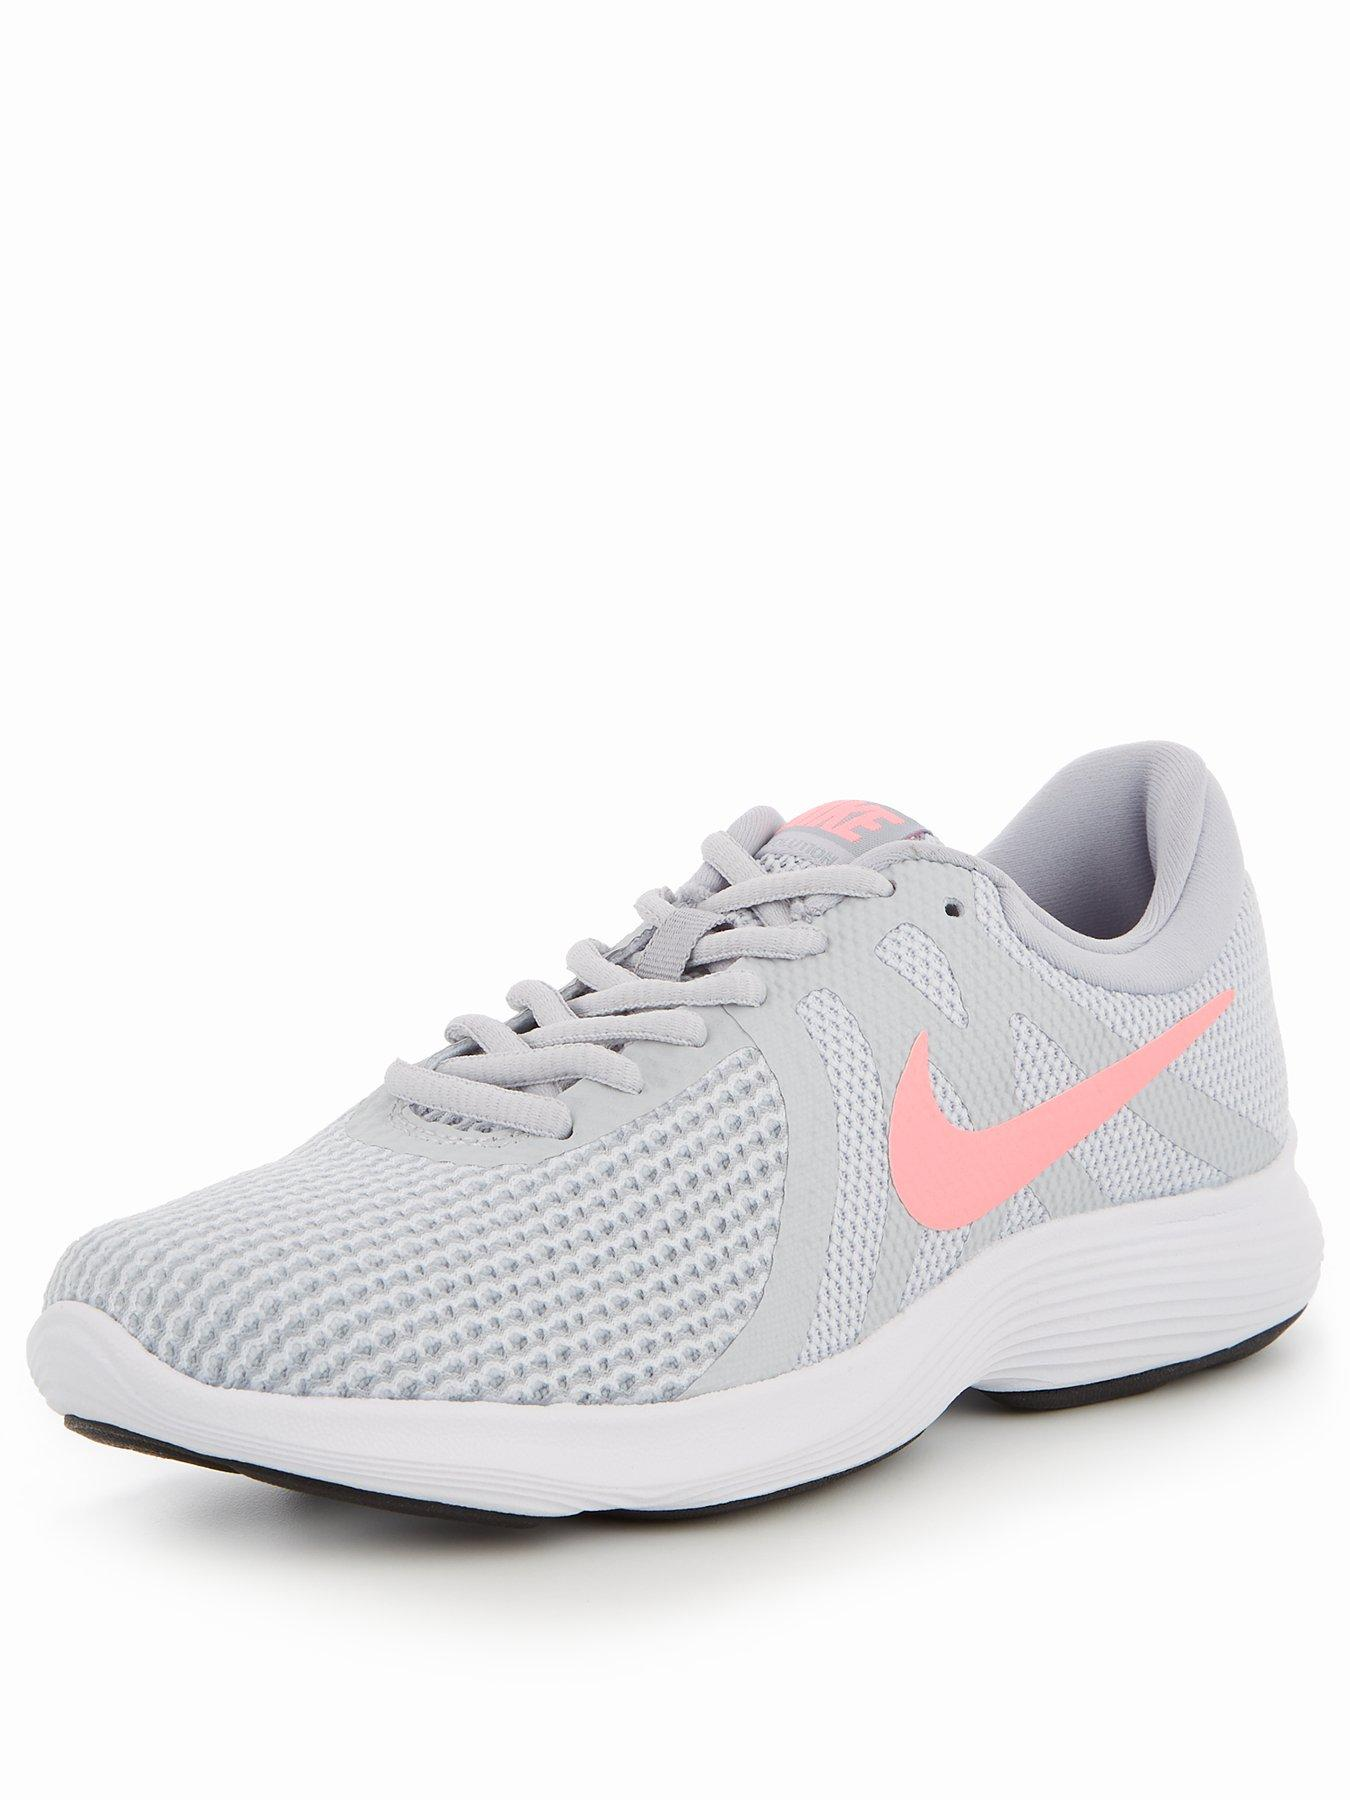 Nike Mujer Runners Trainers & Runners Mujer | Littlewoods Ireland Online 9d90ba